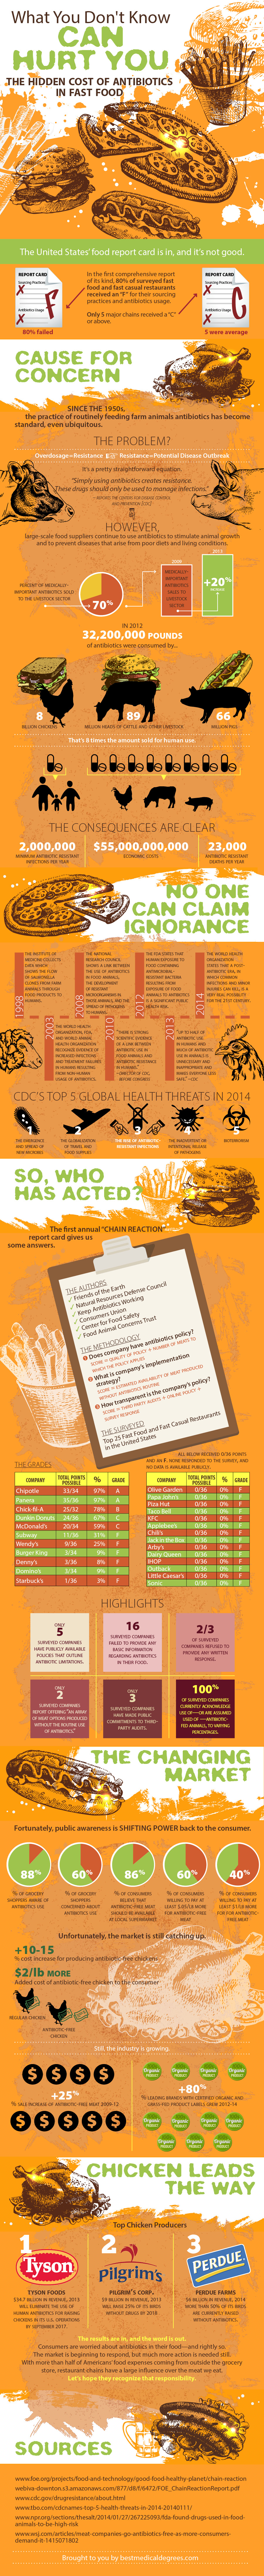 Do You Know Your Food Well? - Infographic